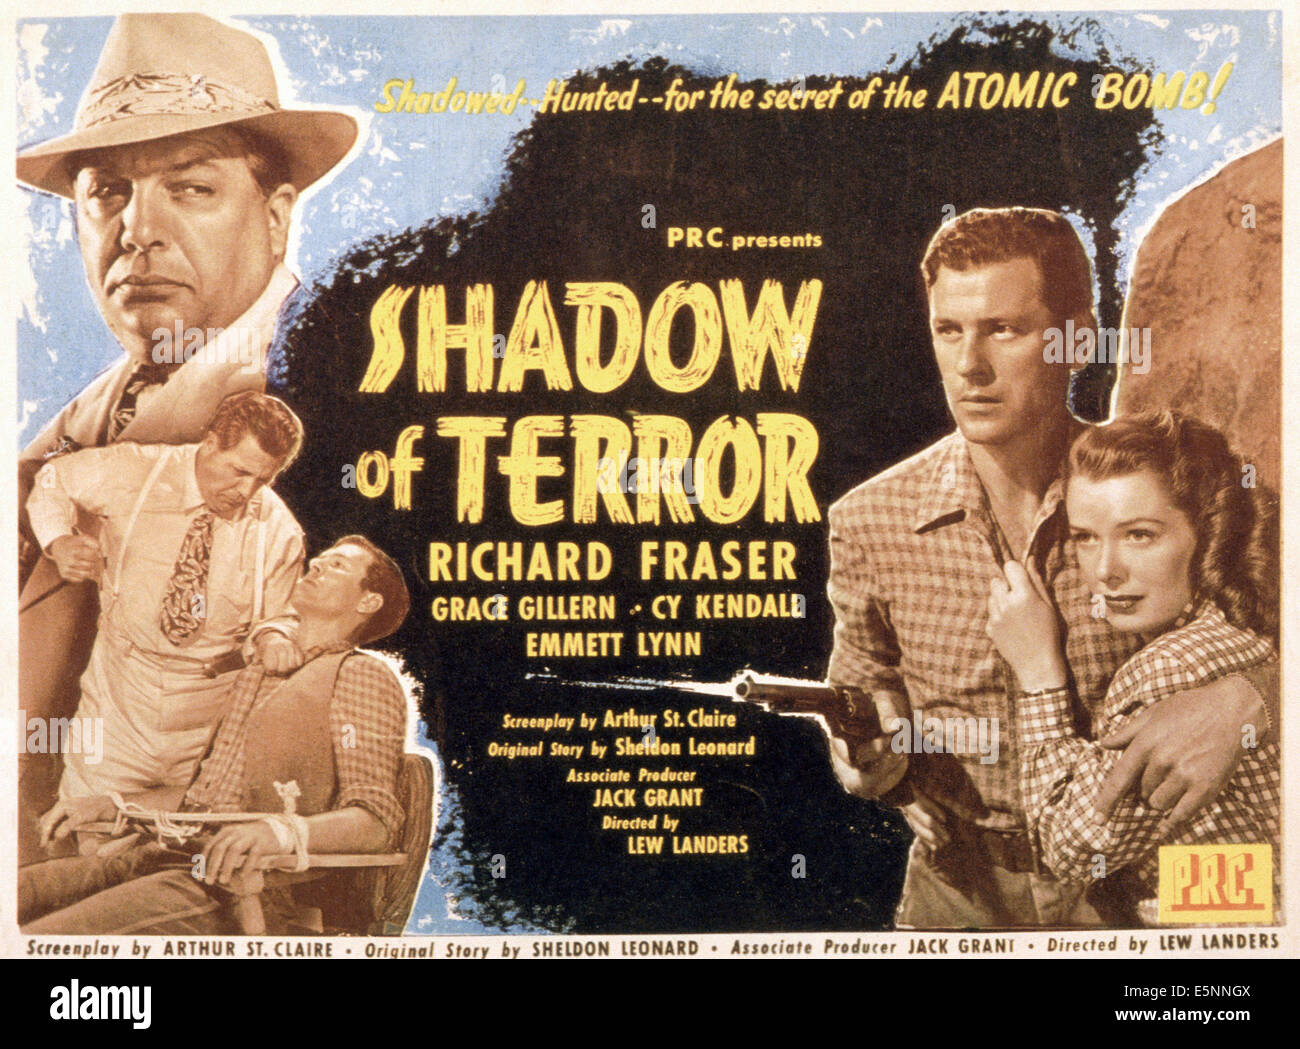 SHADOW OF TERROR, US poster, left from top: Cy Kendall (twice), Richard Fraser, right from left: Richard Fraser, - Stock Image